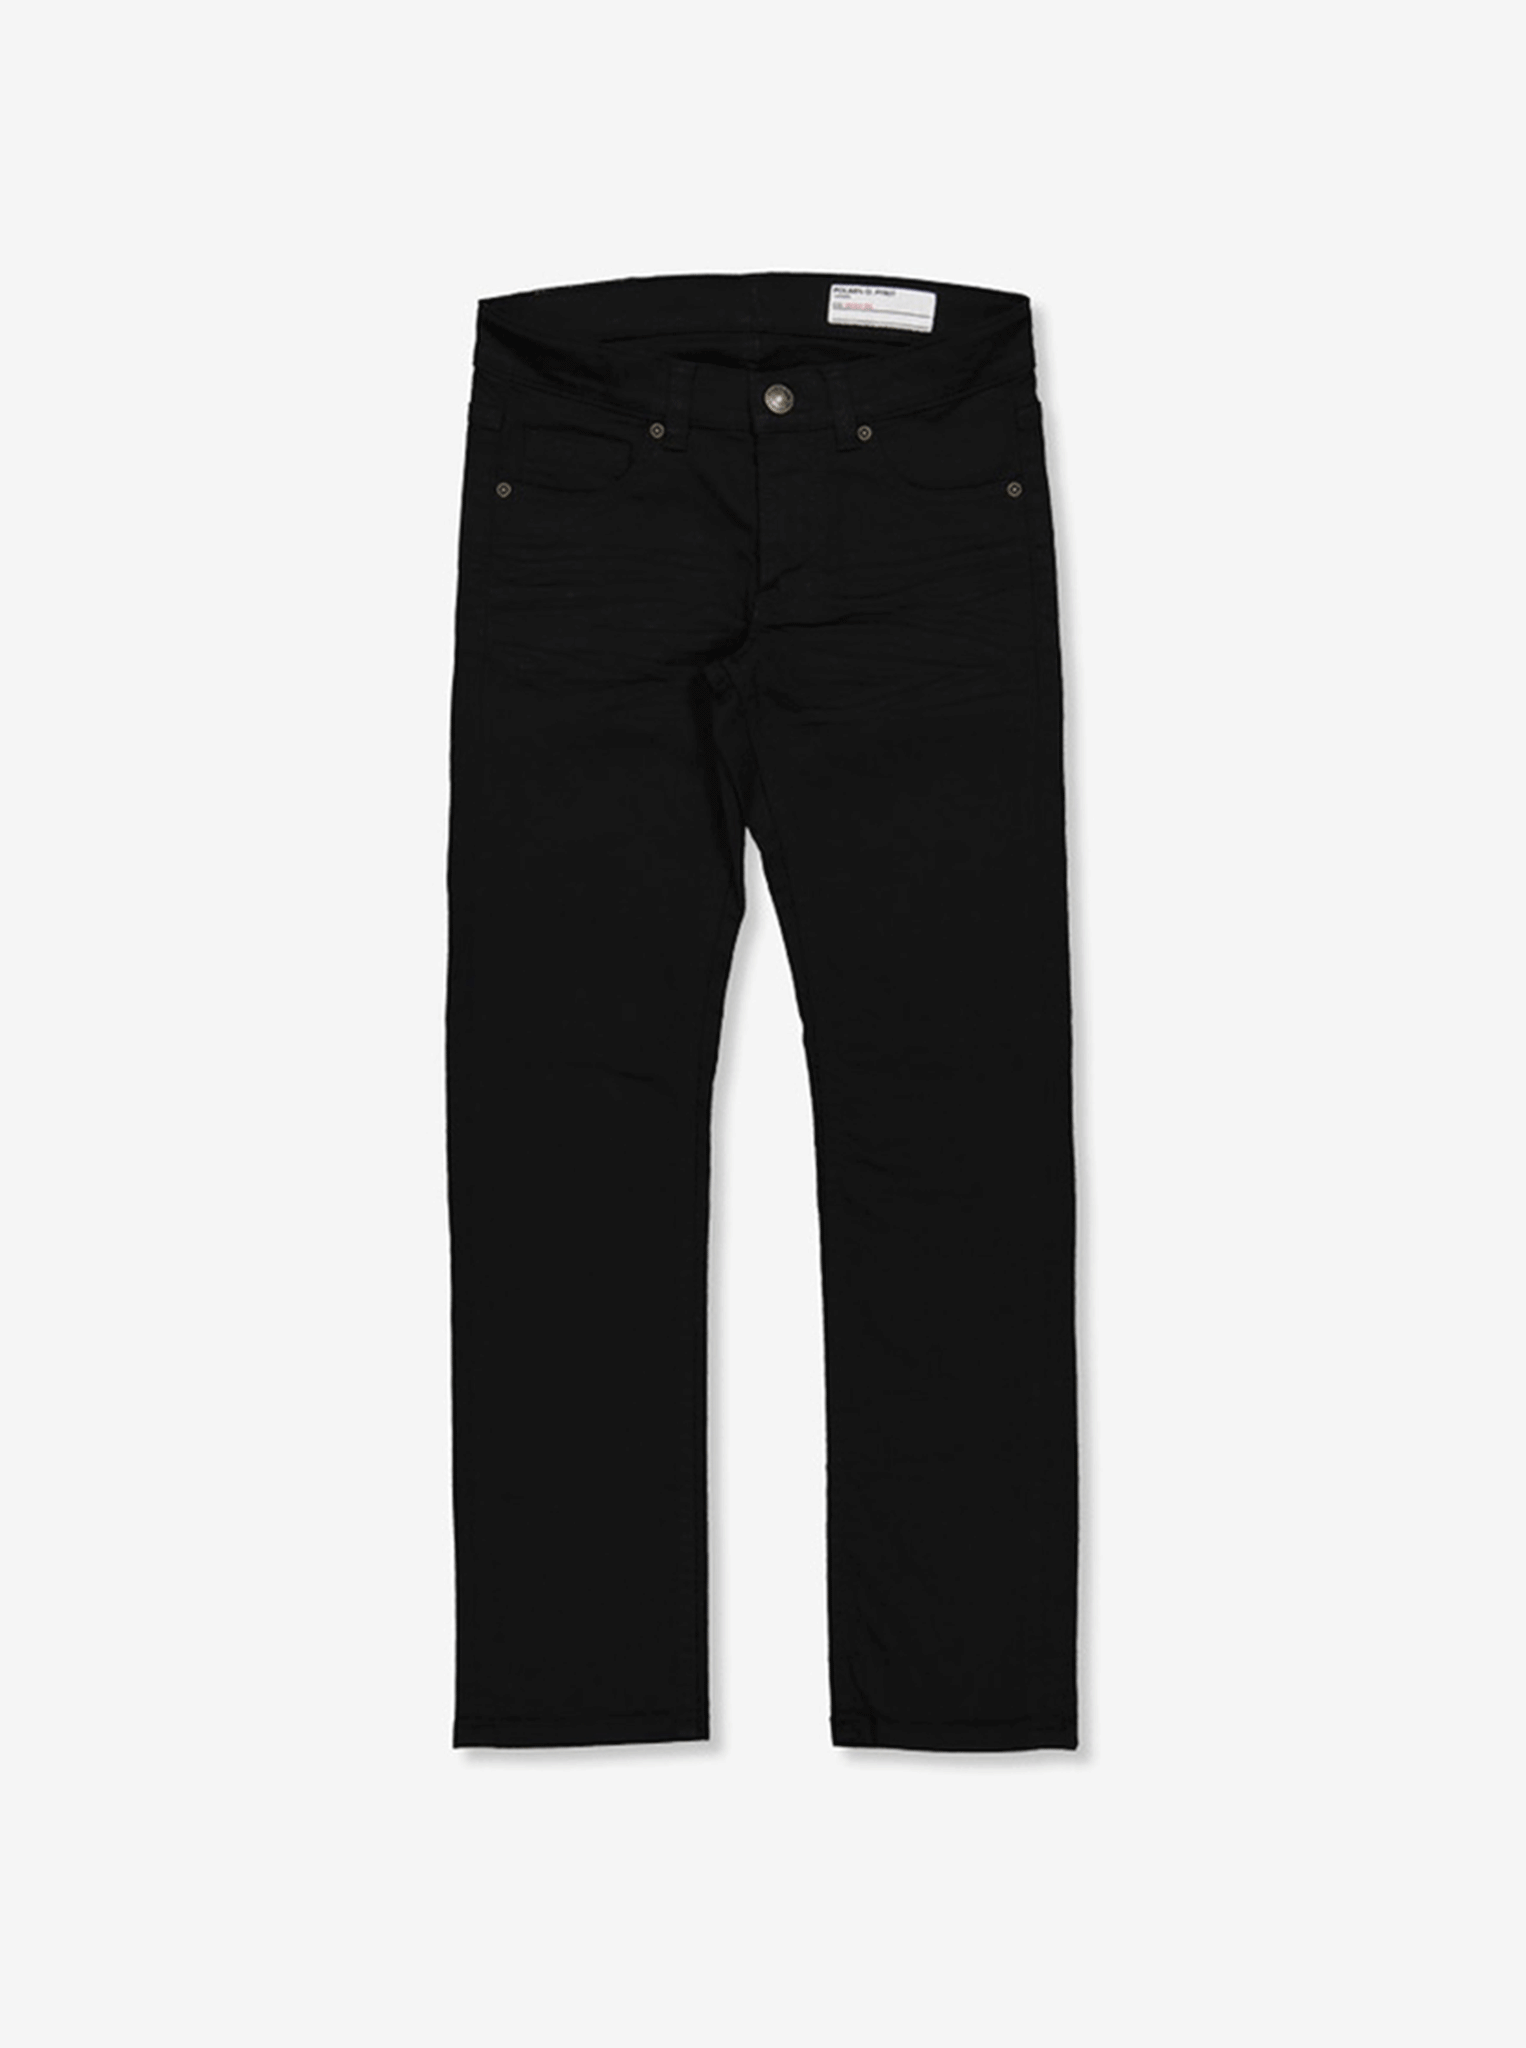 Indigo Slim Fit Kids Jeans Black